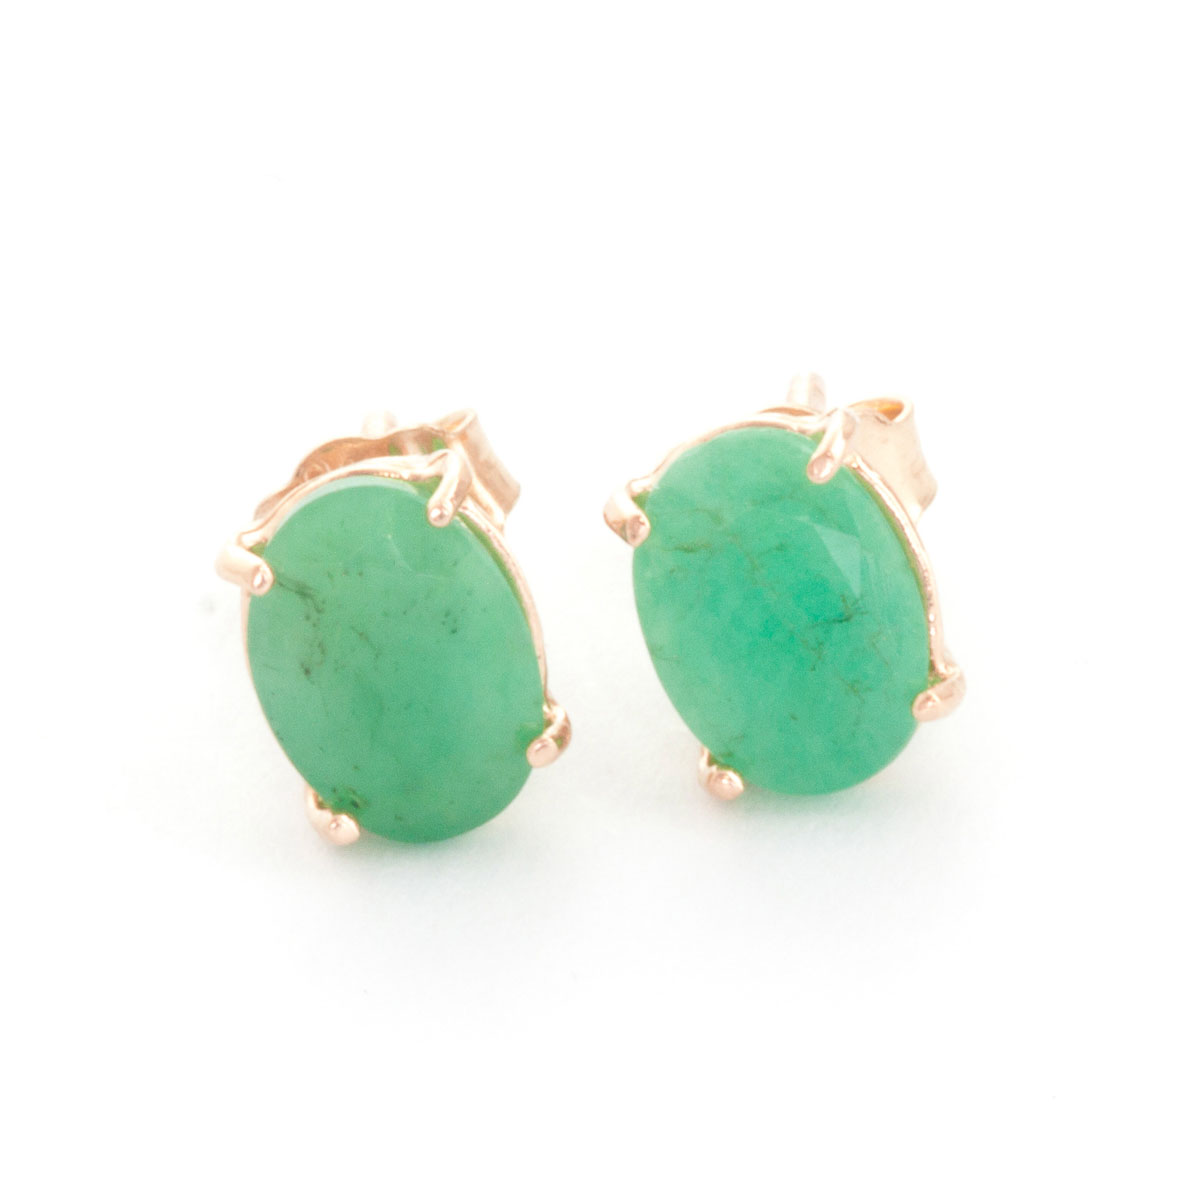 Emerald Stud Earrings 1.5 ctw in 9ct Rose Gold